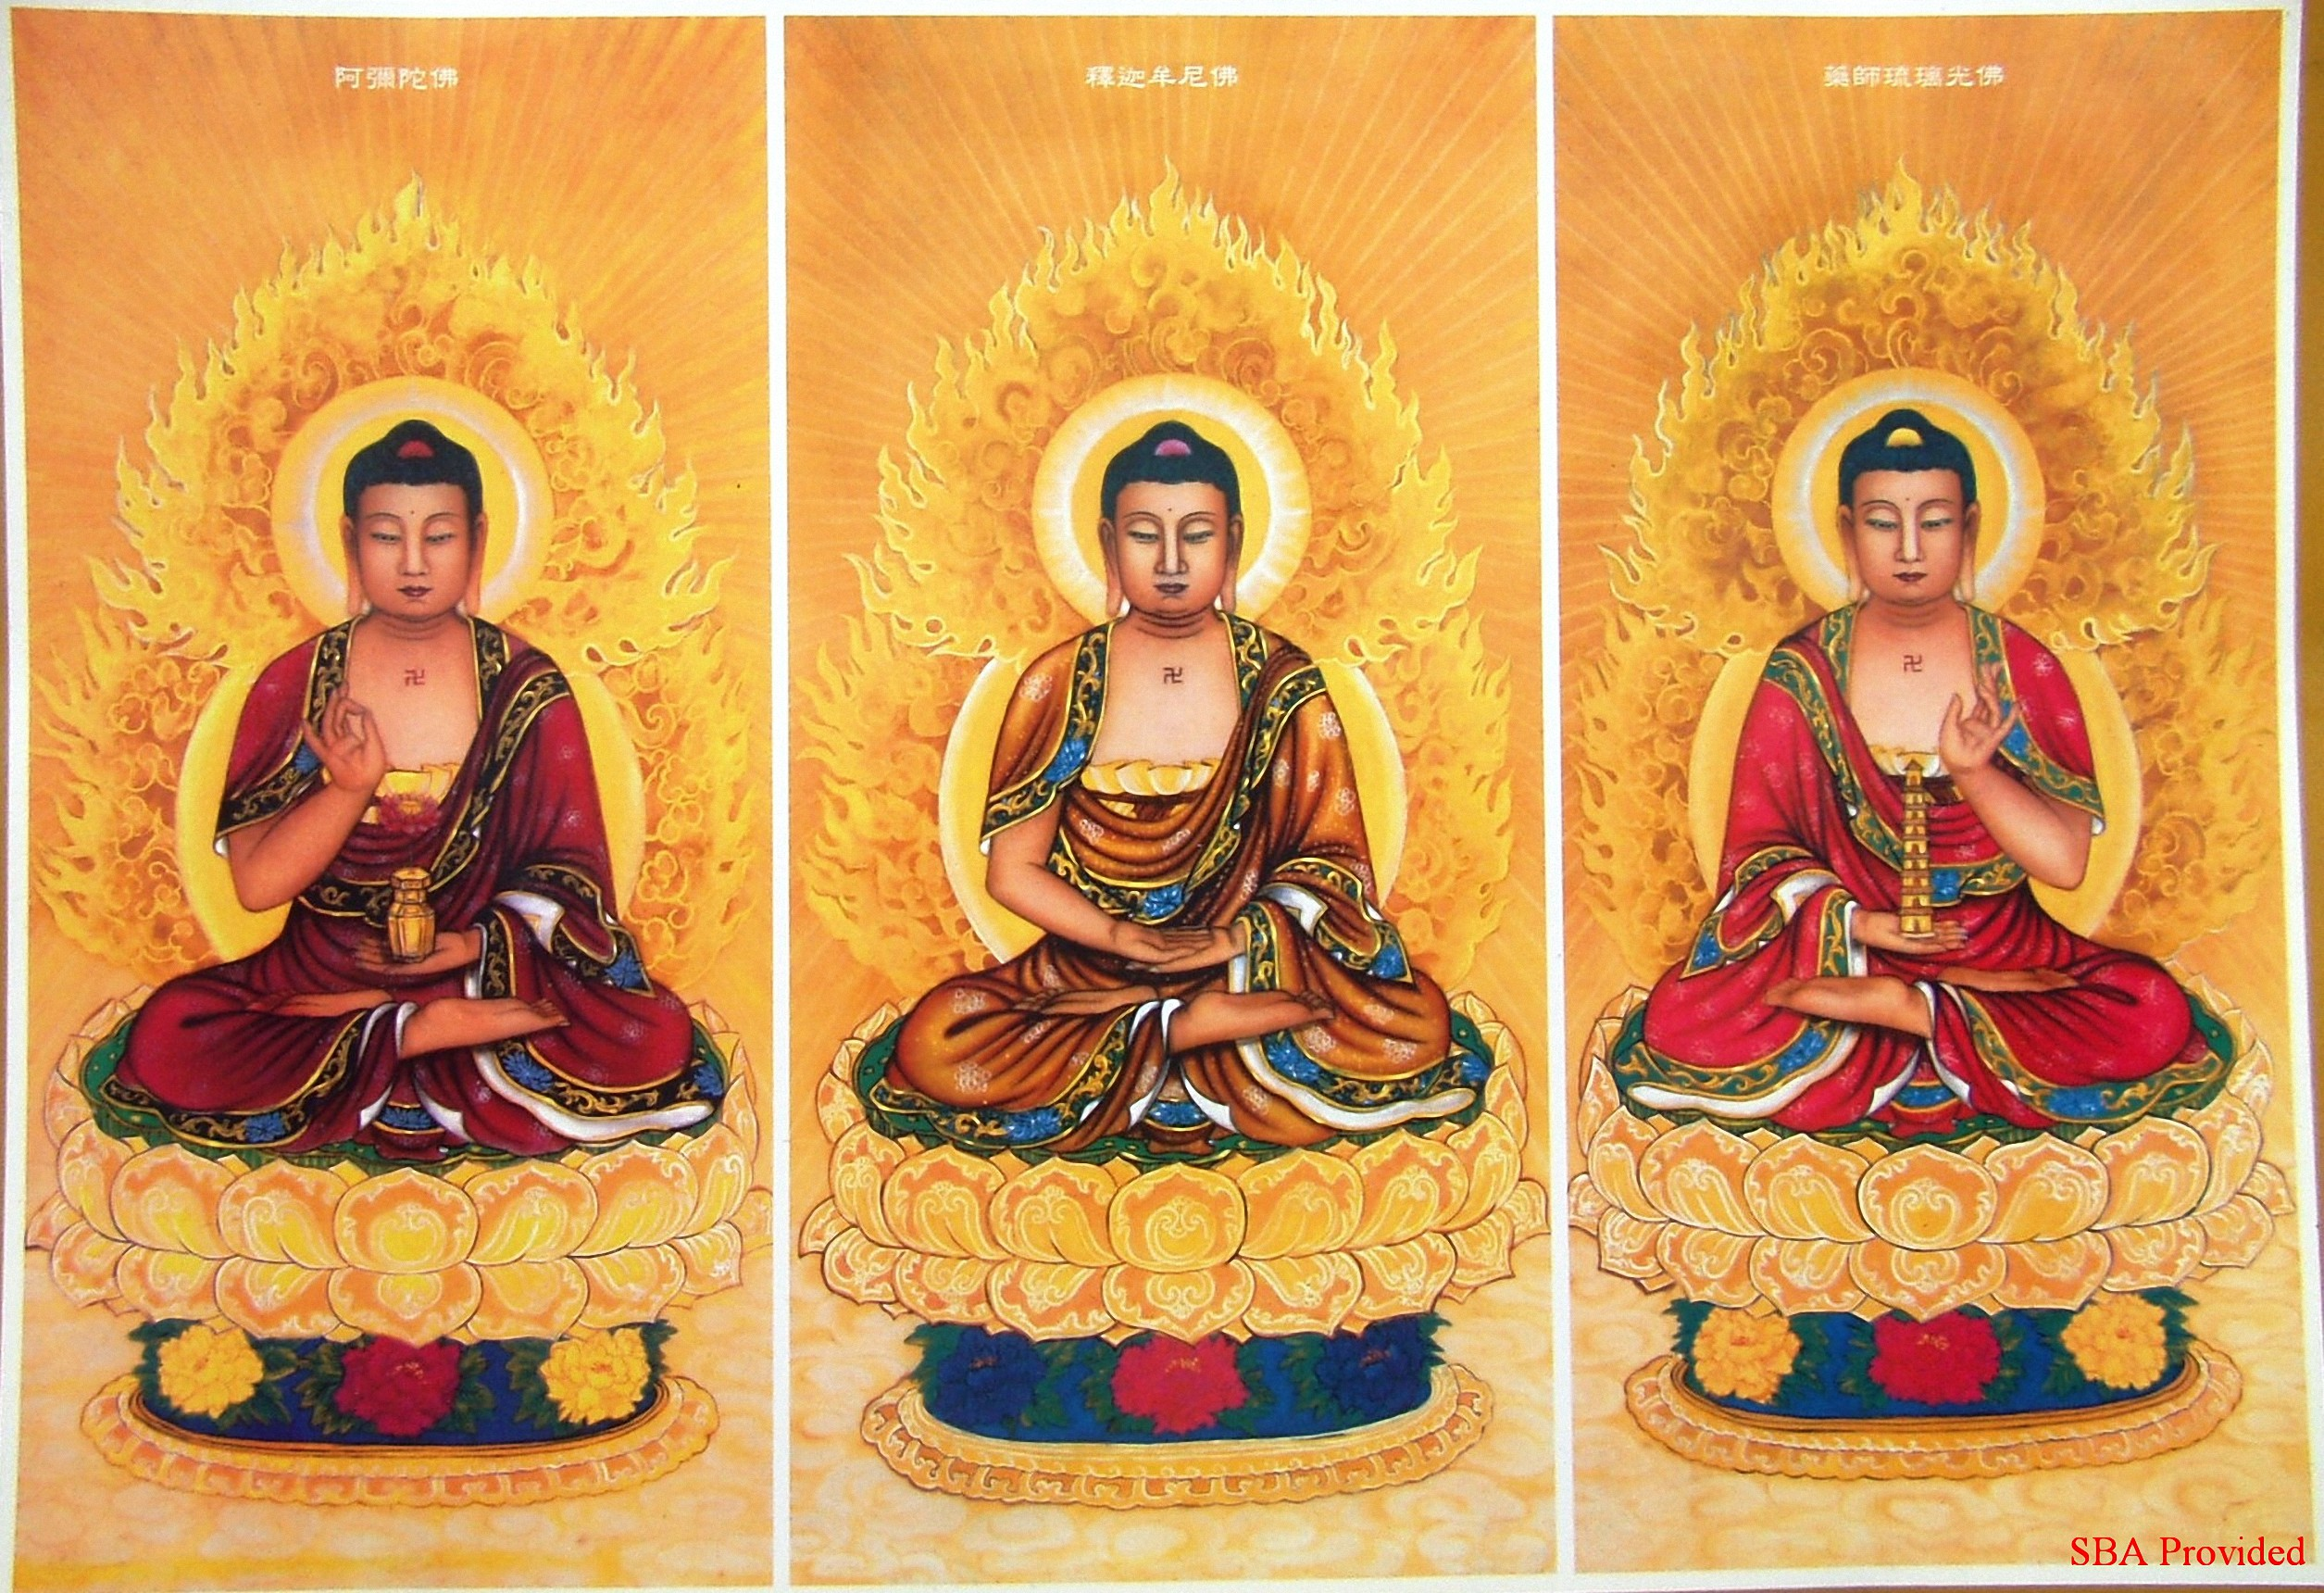 Tam Thế Phật – The Three Noble Buddha (Buddhas of the three generations: past, present and future) – 三世佛